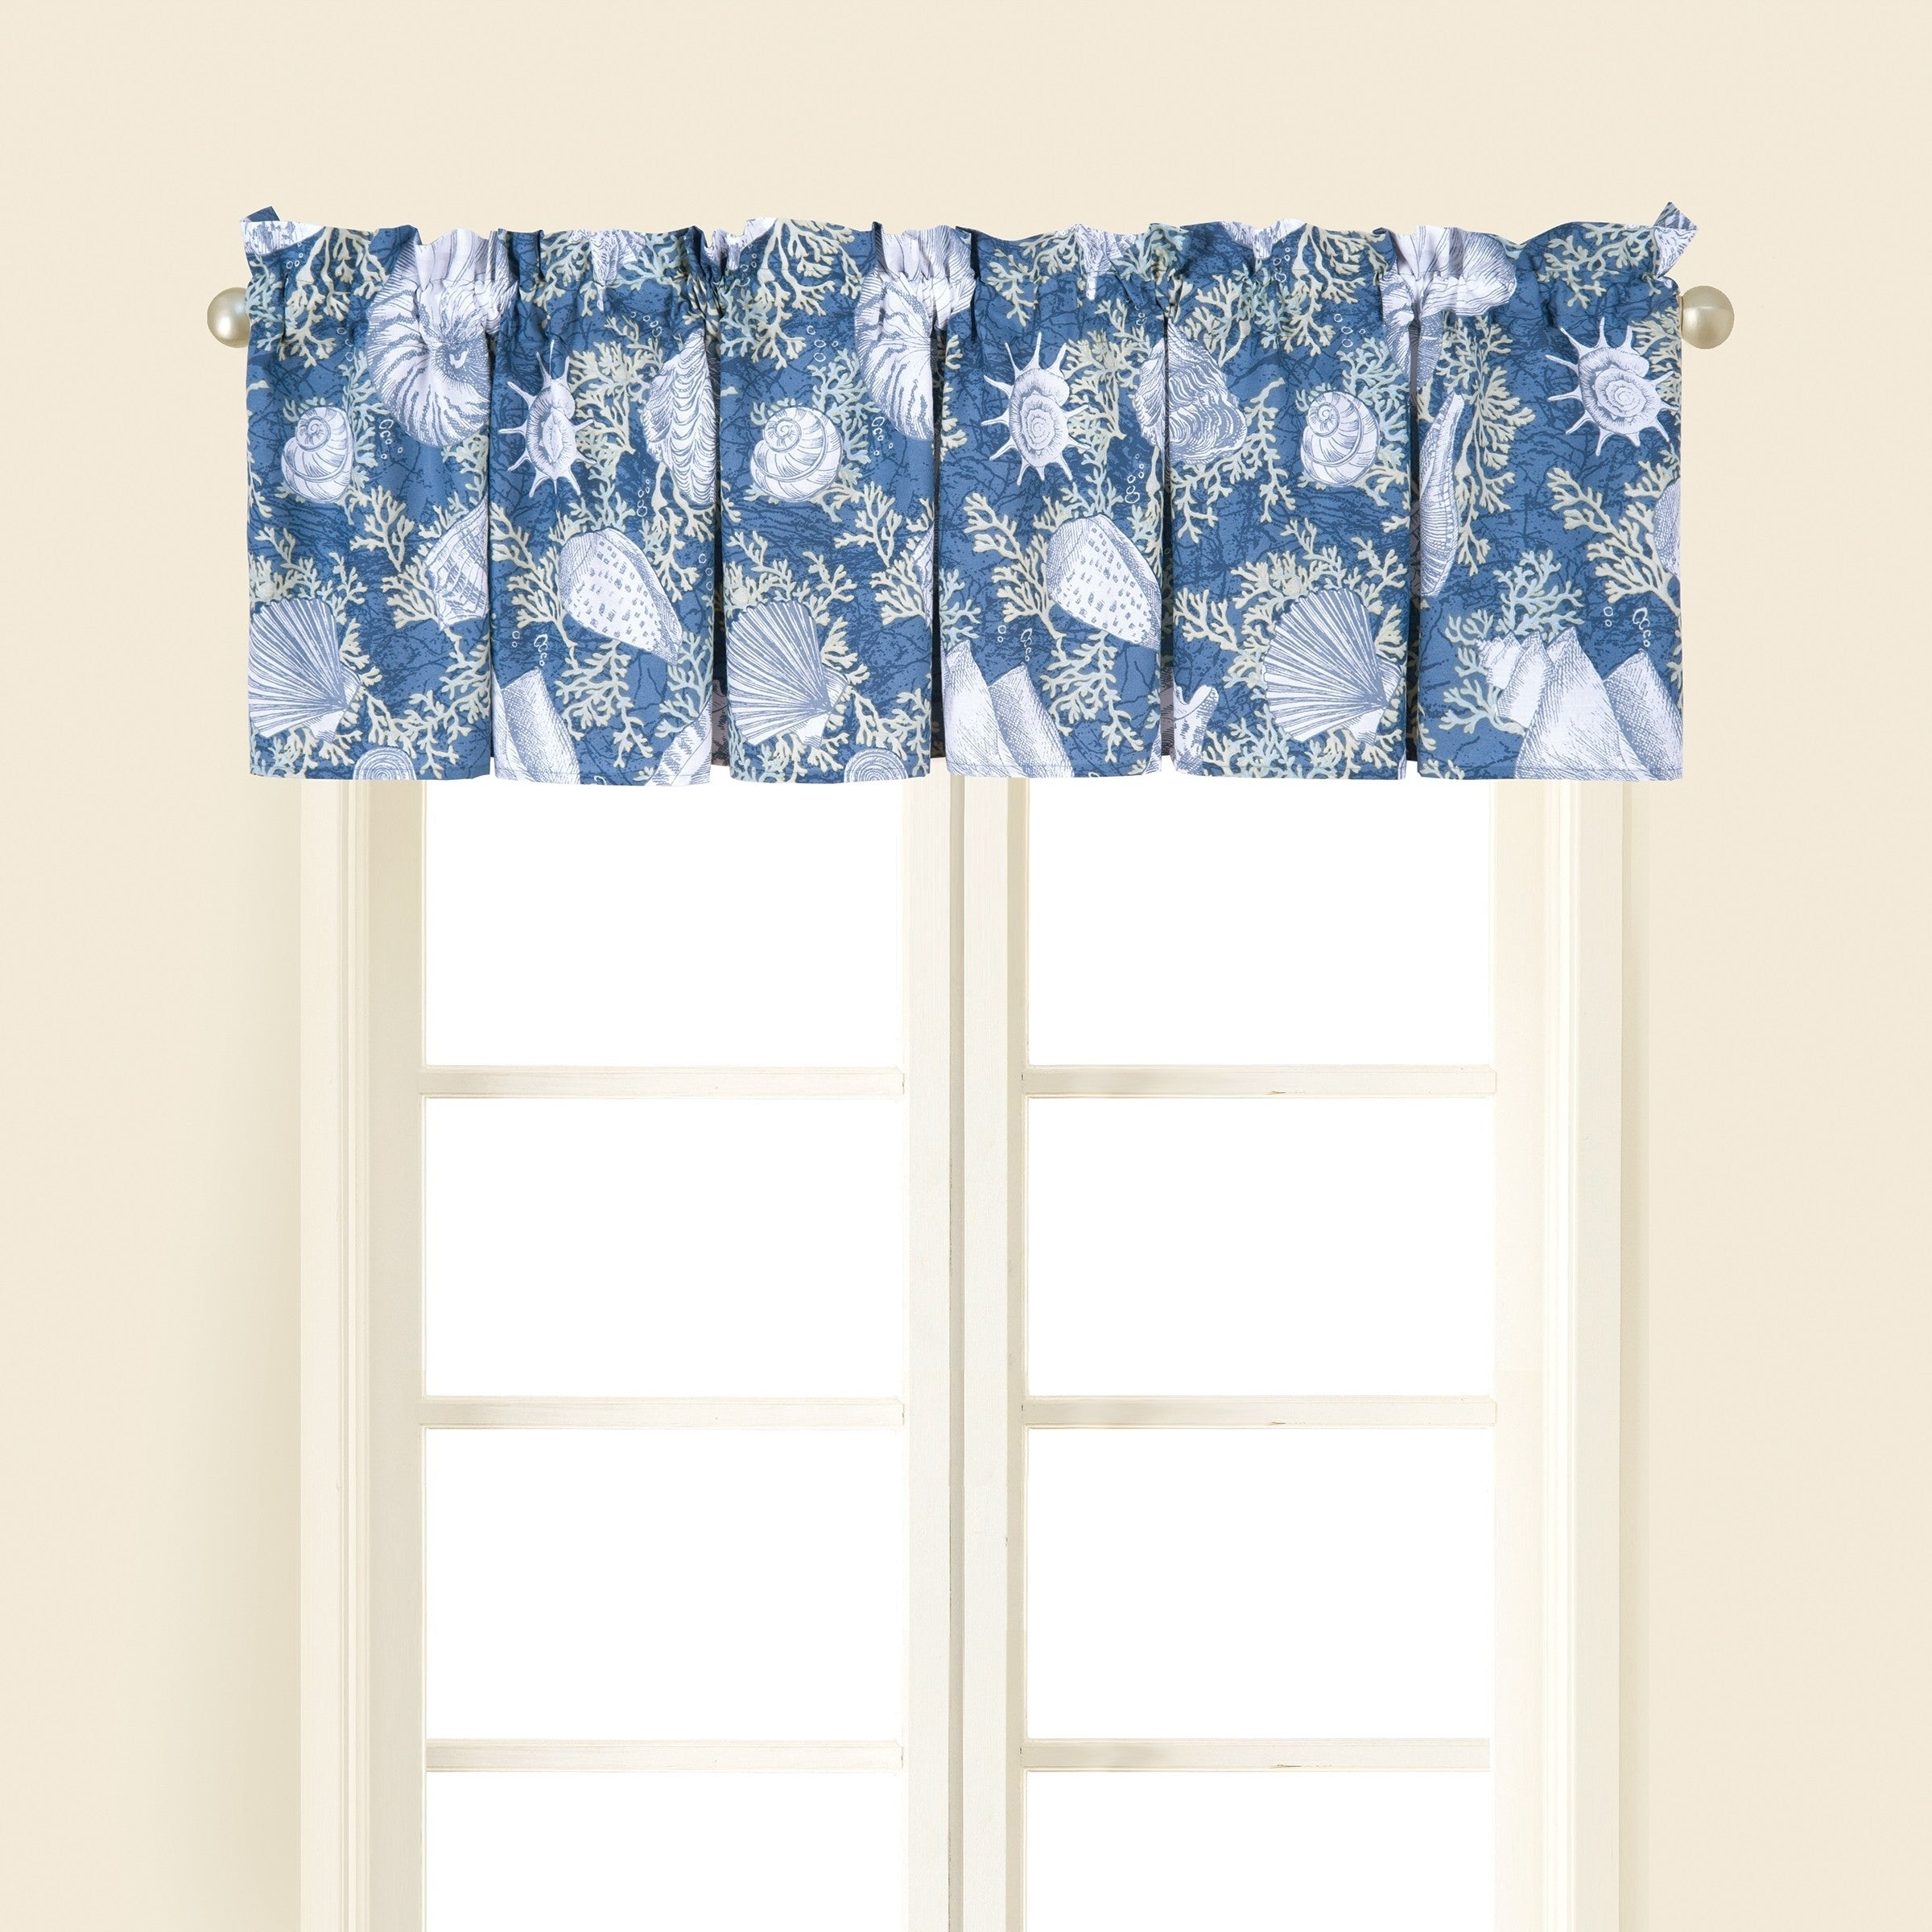 Details About Window Curtain Valance Nautical Beach Coastal Set 2 Cape Coral Decor Gift New With Coastal Tier And Valance Window Curtain Sets (View 12 of 20)